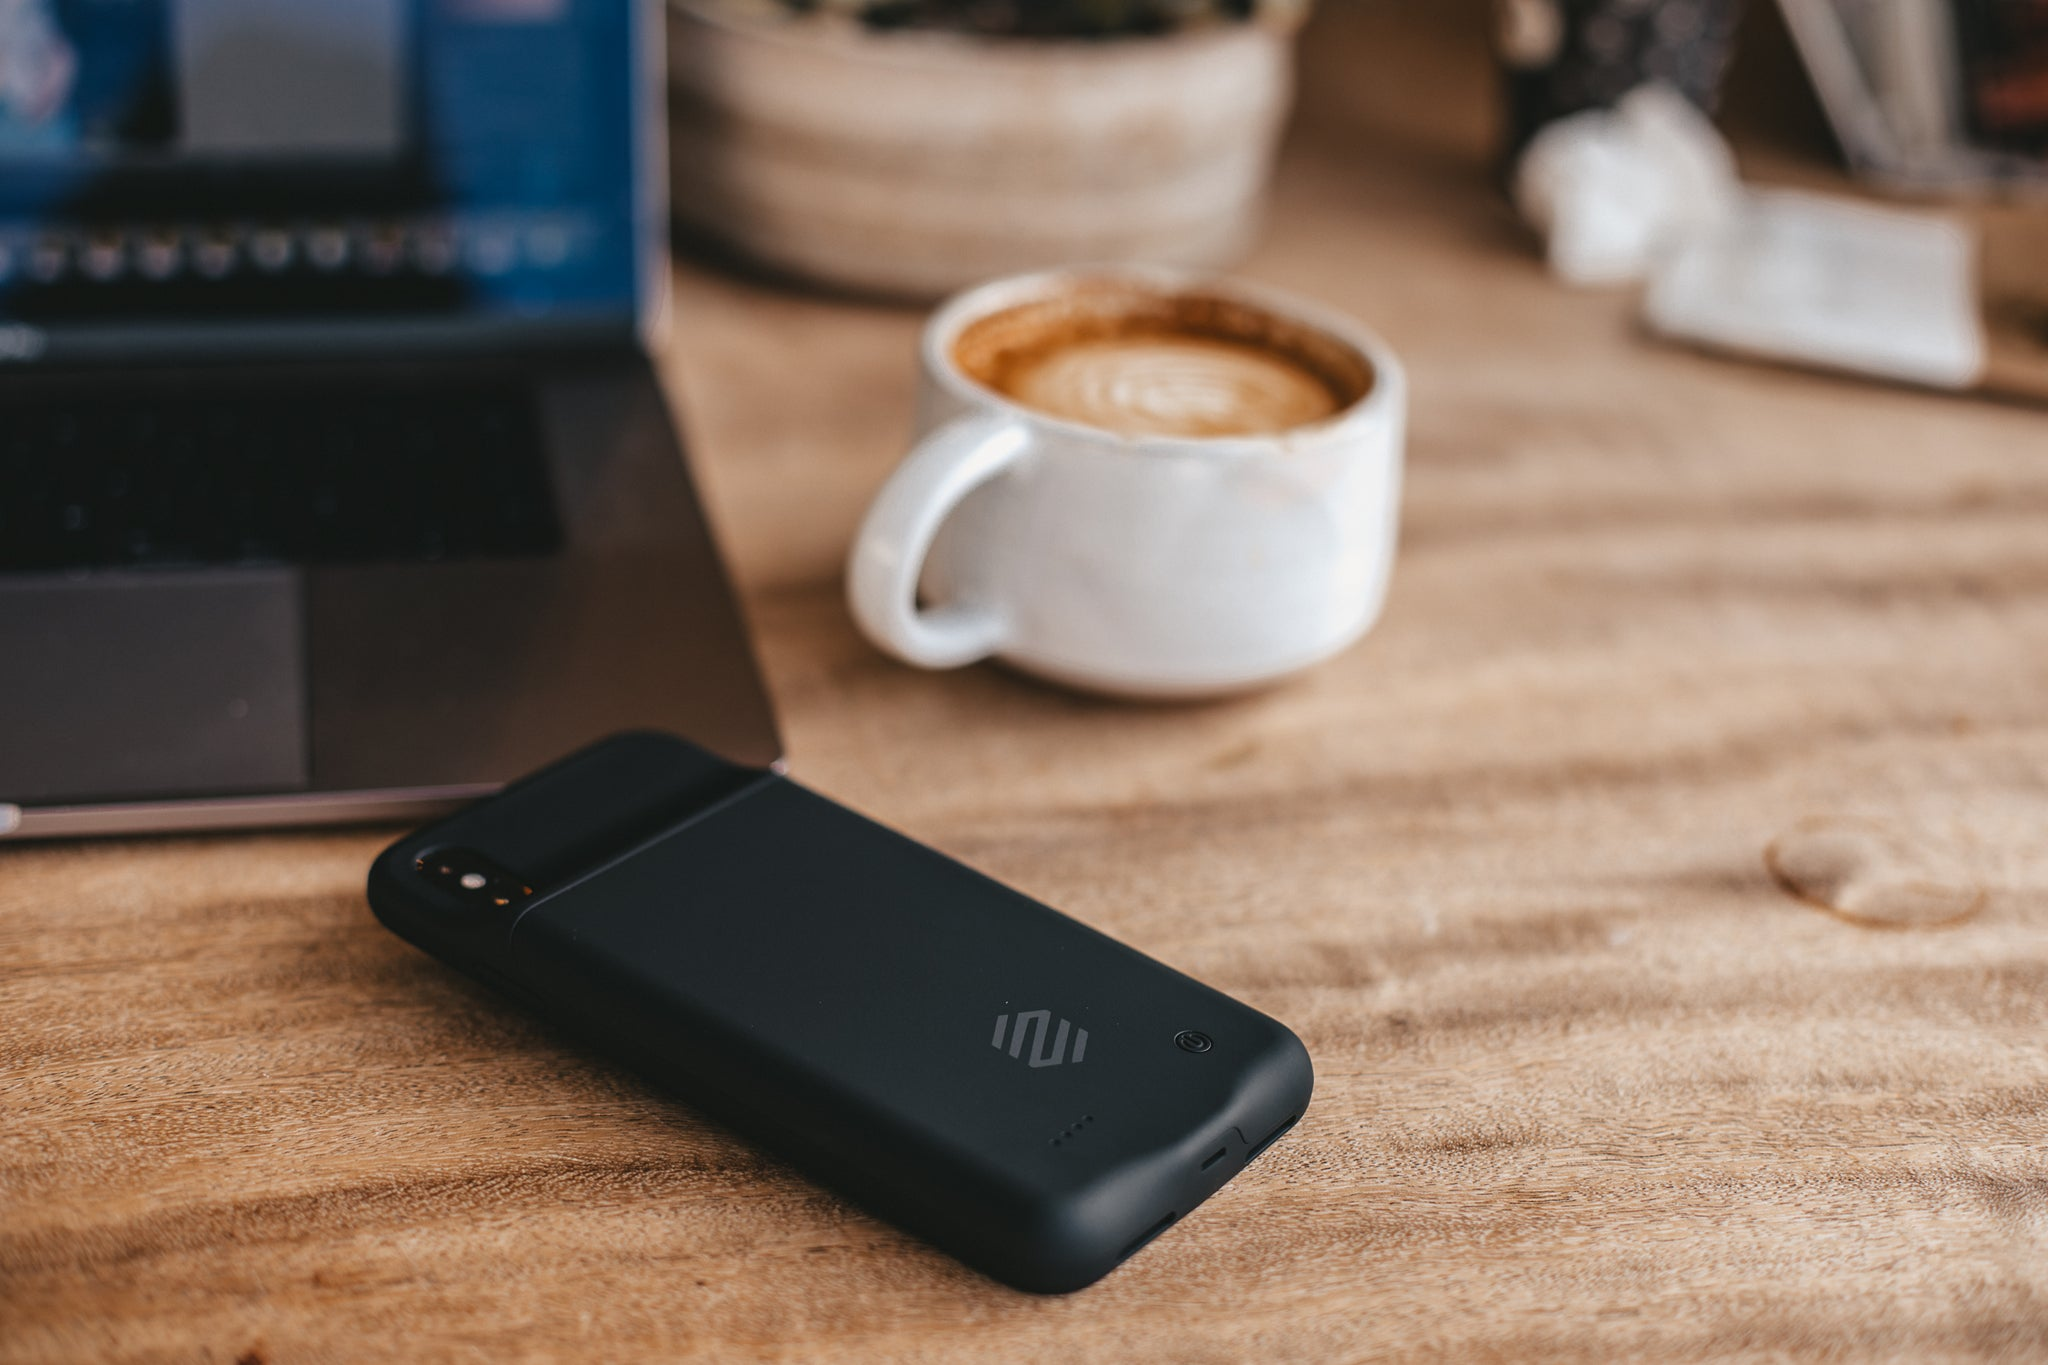 The Best iPhone 8 and iPhone X Battery Case Choices